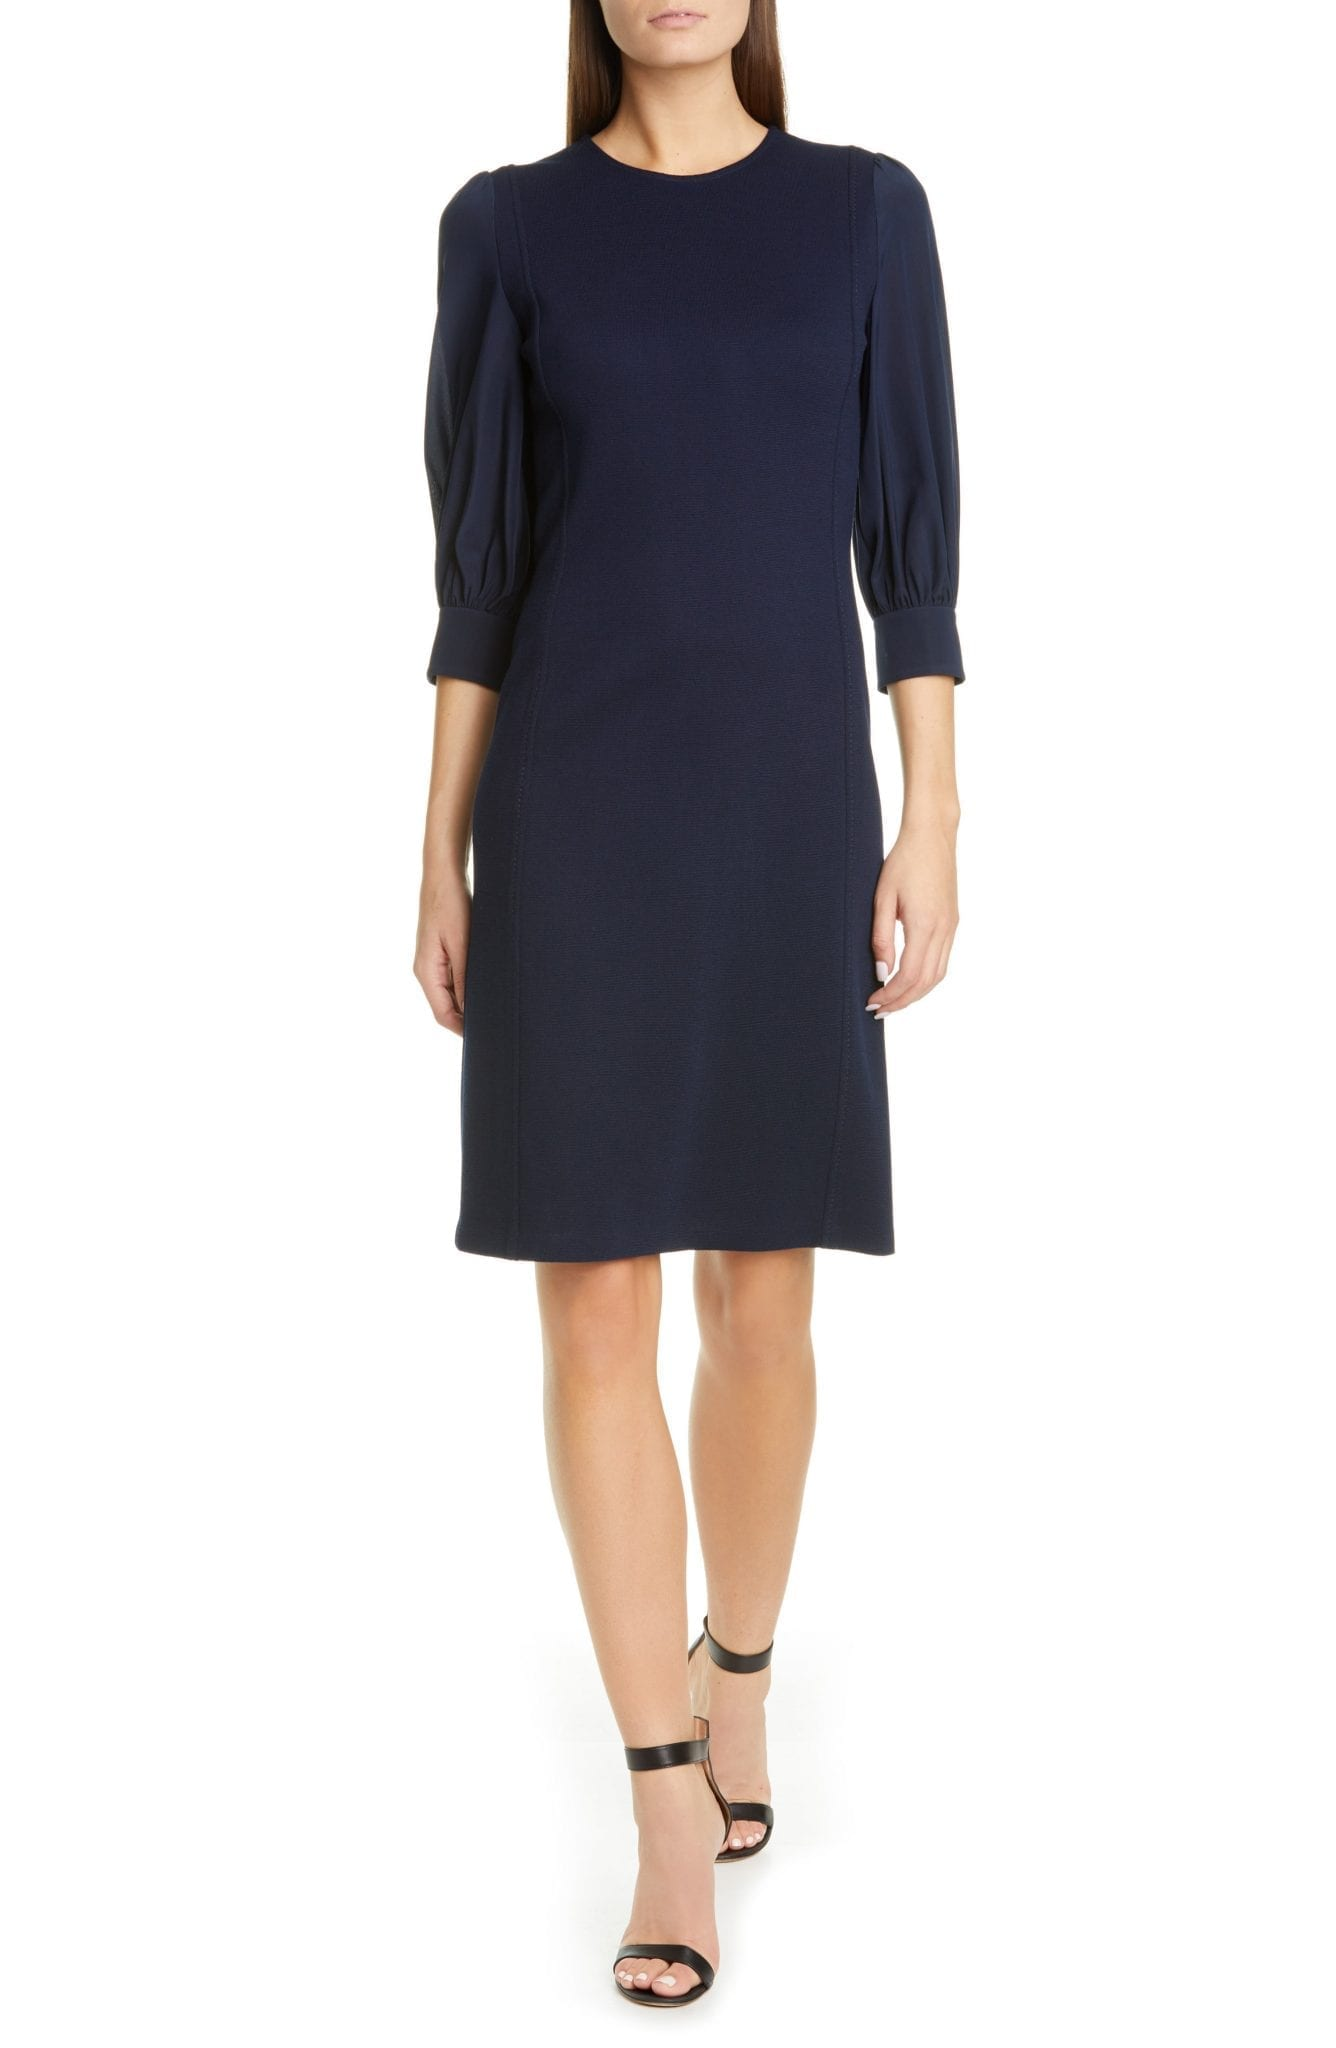 ST. JOHN COLLECTION Duo Milano Knit Mixed Media Dress